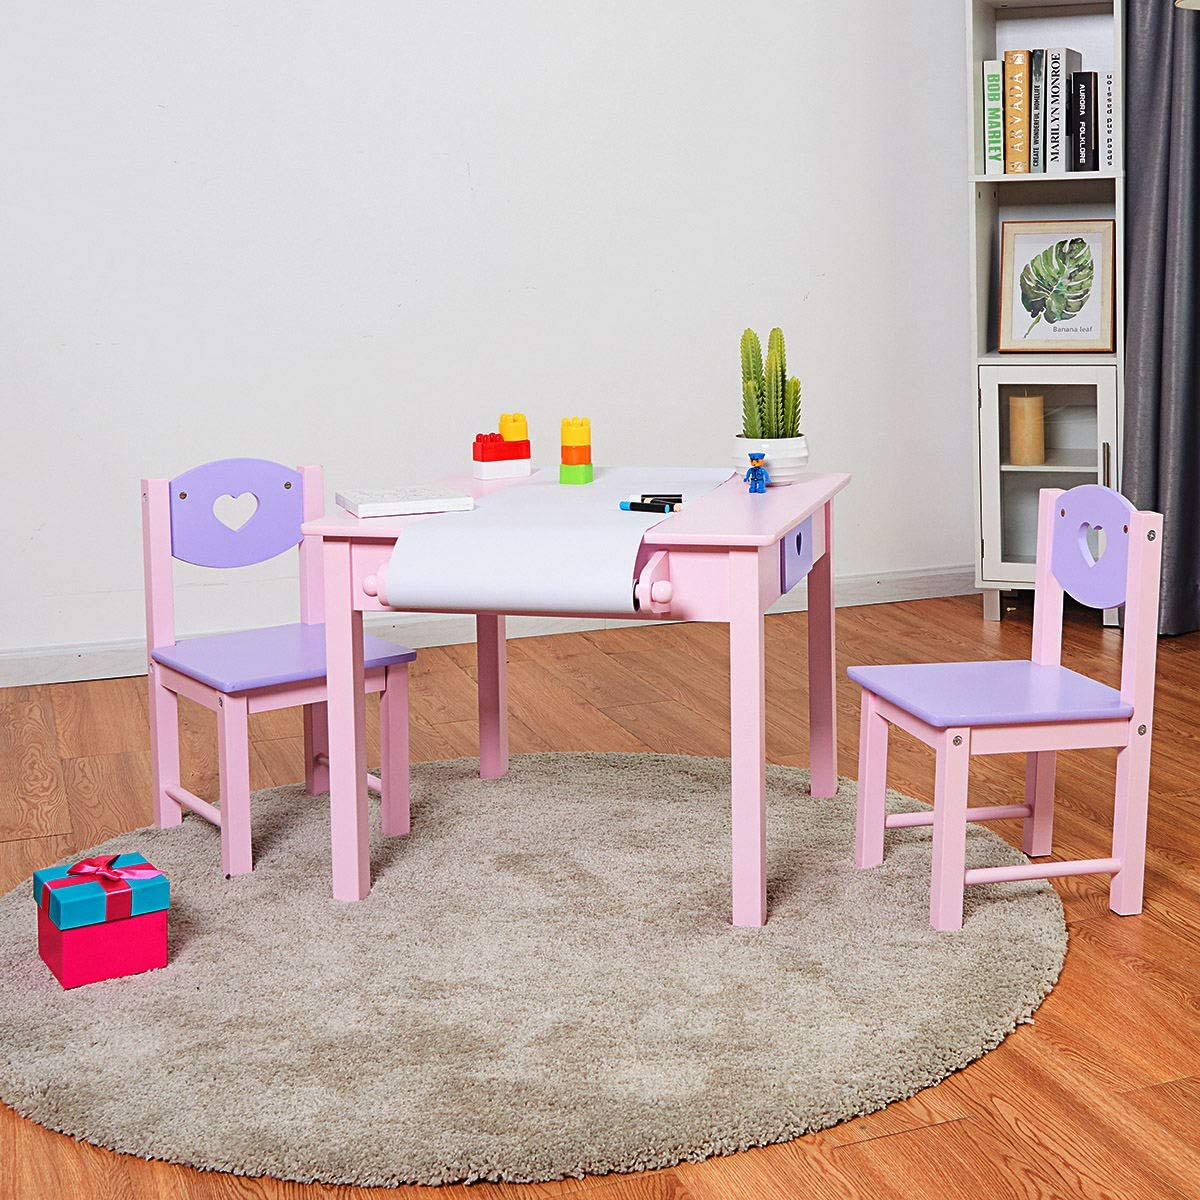 COSTWAY Kids Table Chair Set with 2 Drawers Storage & Paper Roll Rack, Children Wooden Art Painting Desk + 2 Chairs Set for Living Room, Bedroom (Pink